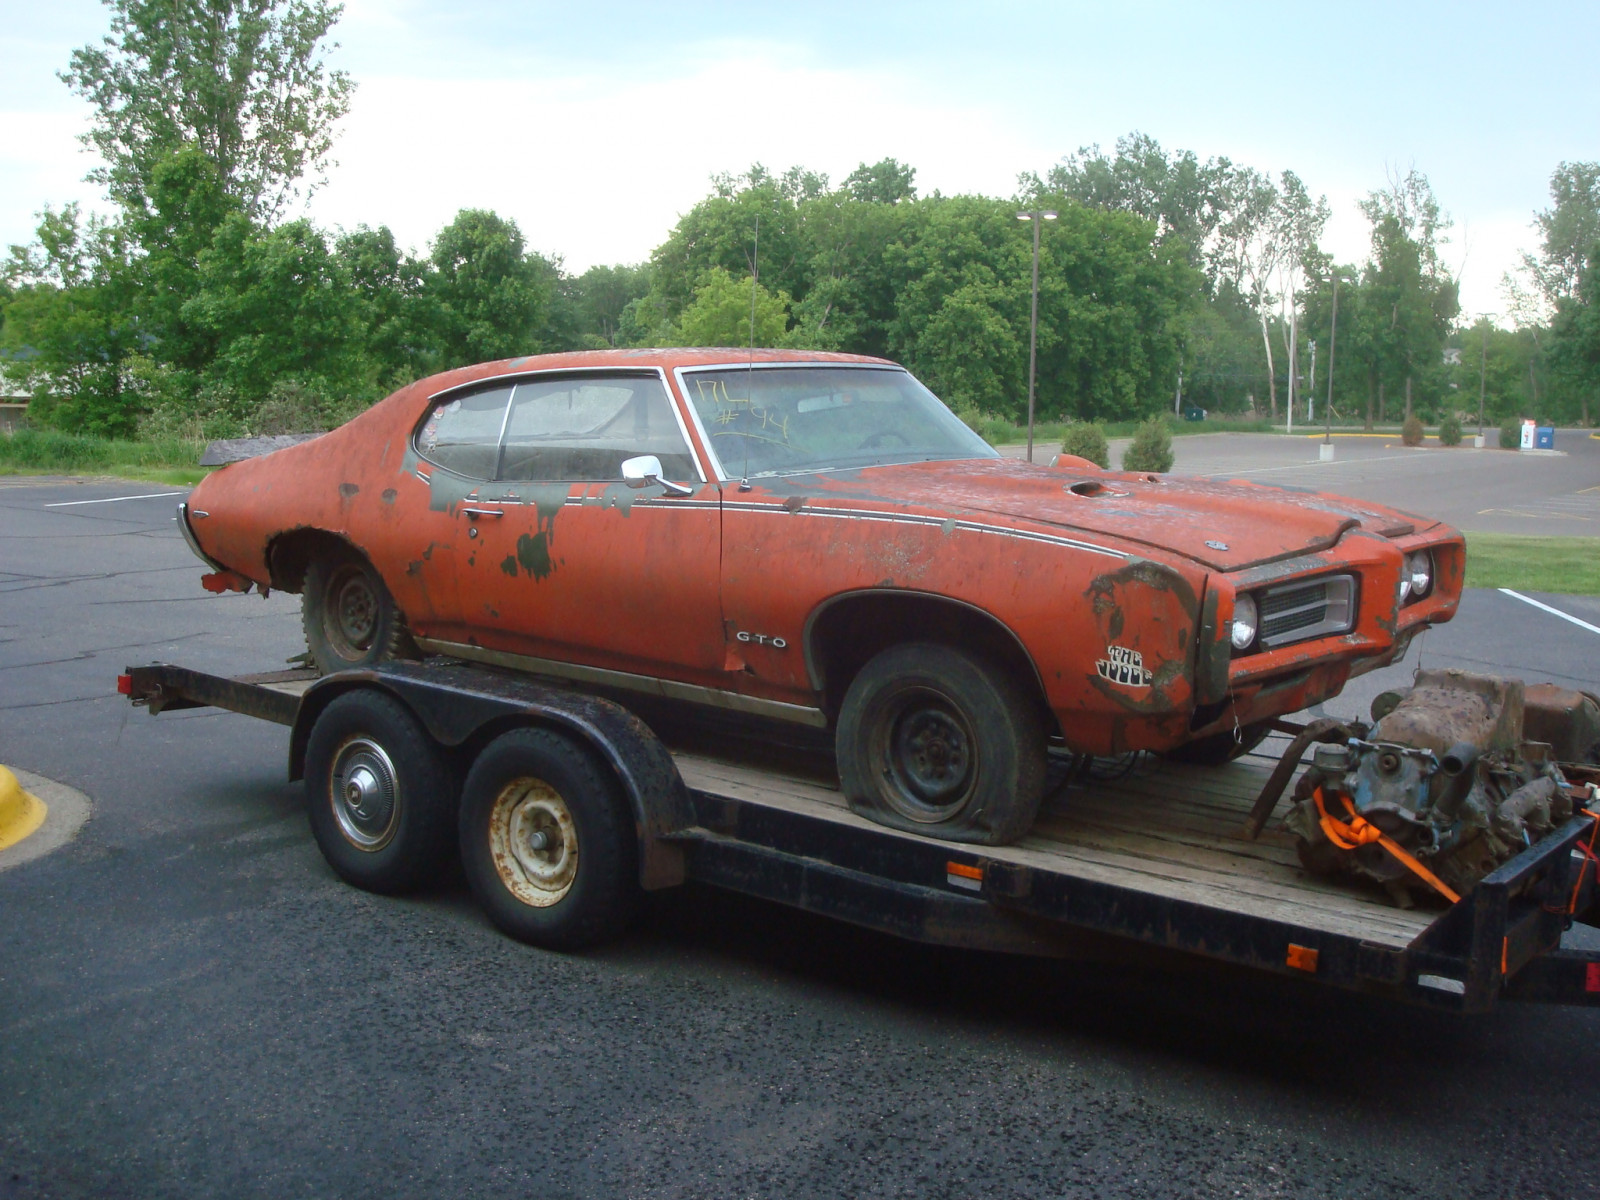 1969 Pontiac GTO RAM AIR IV Coupe Project - Image 2